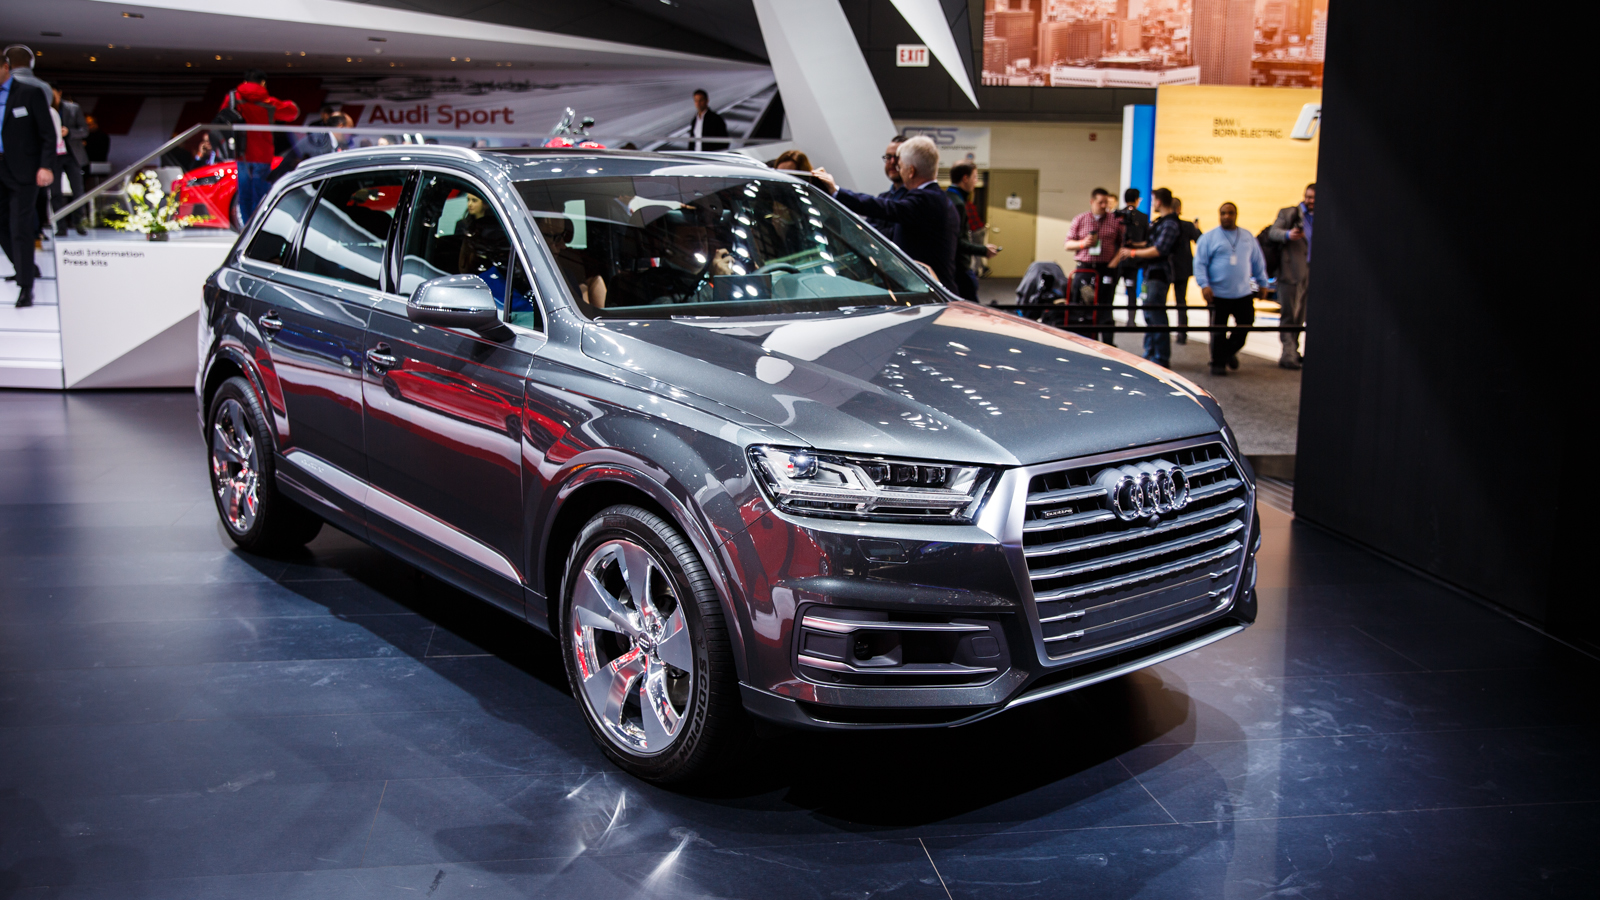 2016 audi q7 tdi release date price and specs cnet. Black Bedroom Furniture Sets. Home Design Ideas